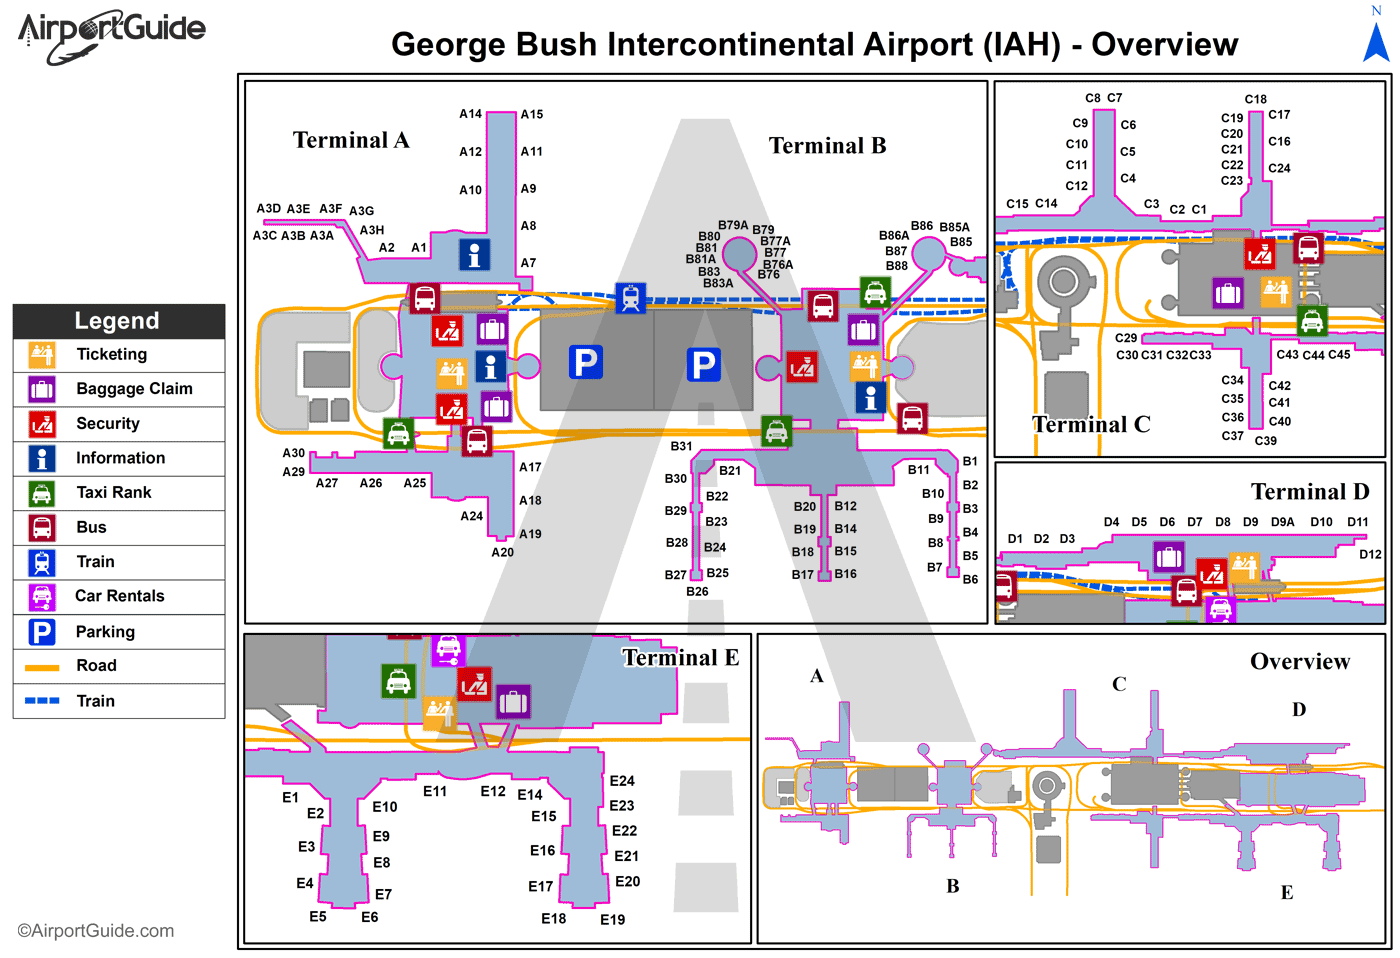 Houston - George Bush Intercontinental/Houston (IAH) Airport Terminal Map - Overview